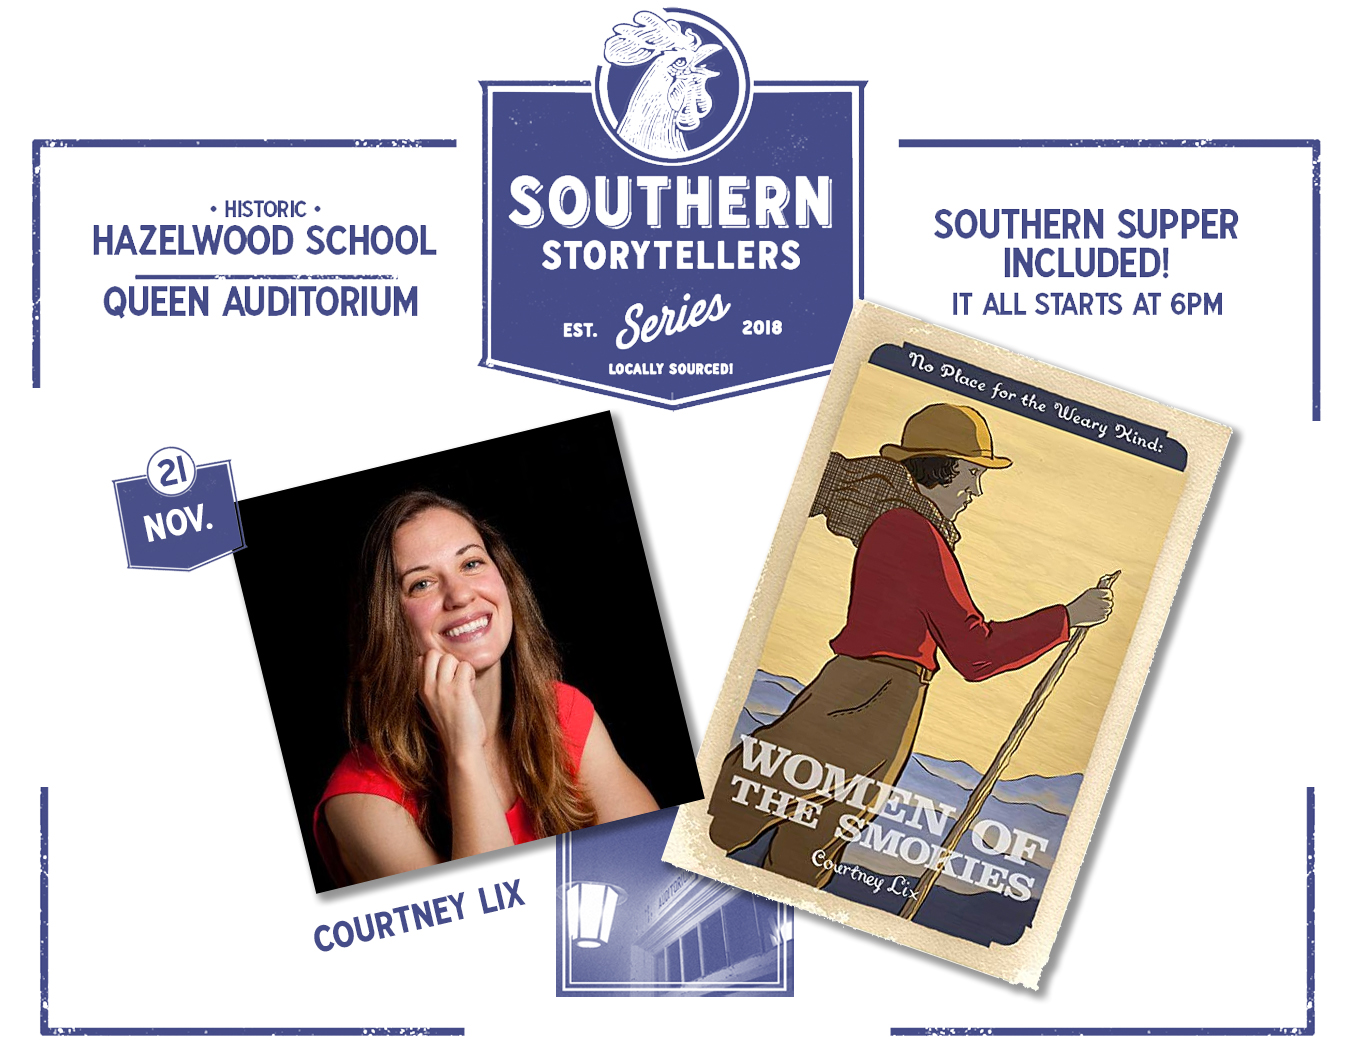 Southern Storytellers Series Courtney Lix